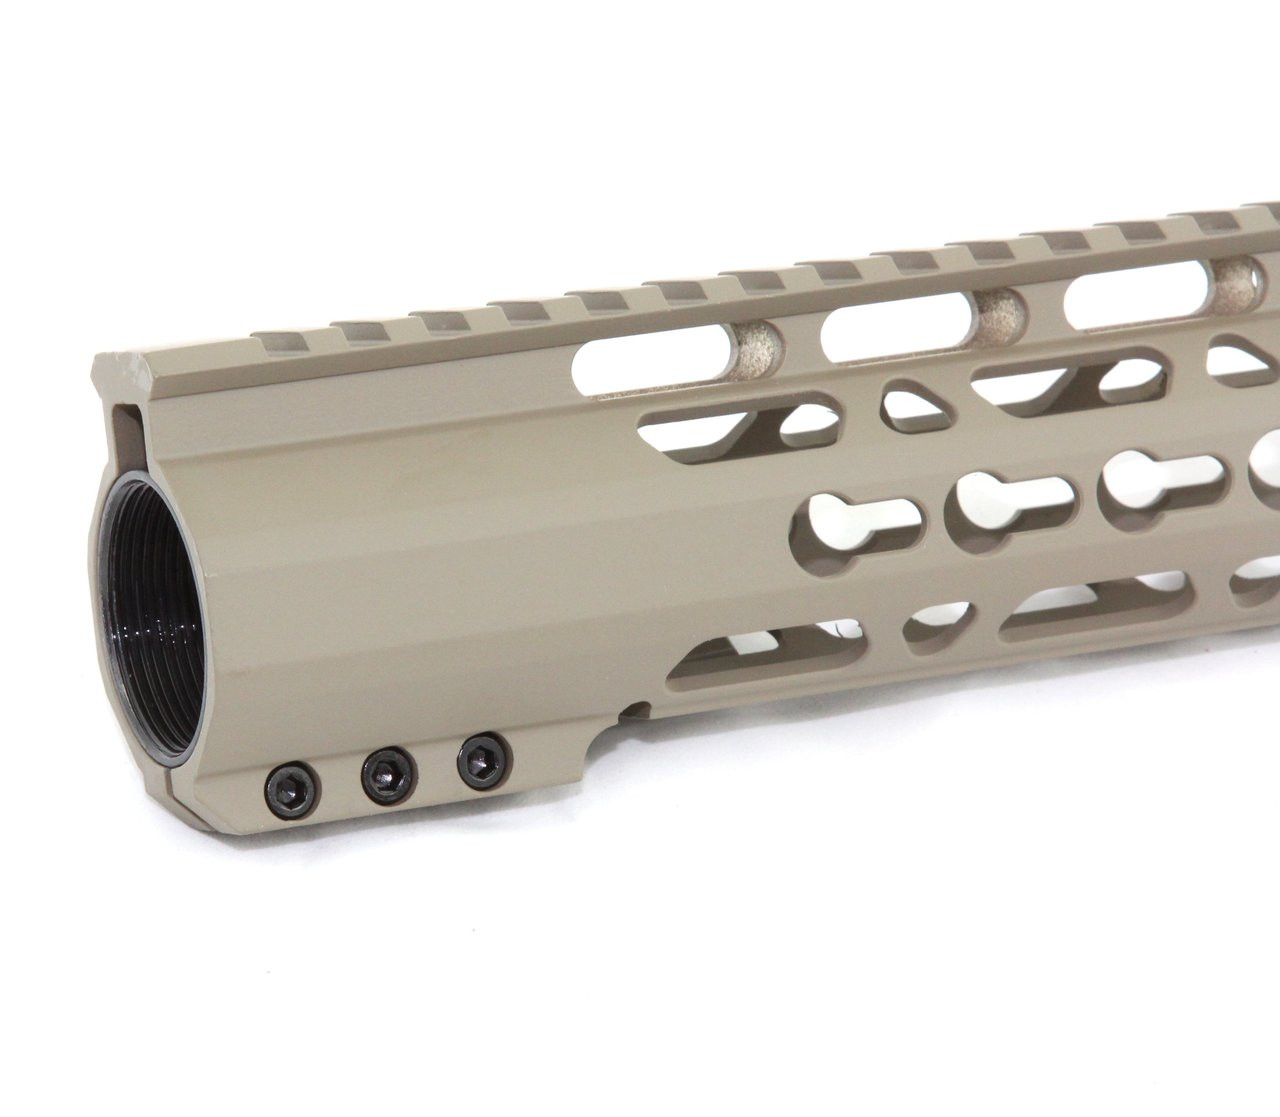 "223 15/"" inch ULTRA SLIM Super Slim Keymod handguard Free Float TAN"